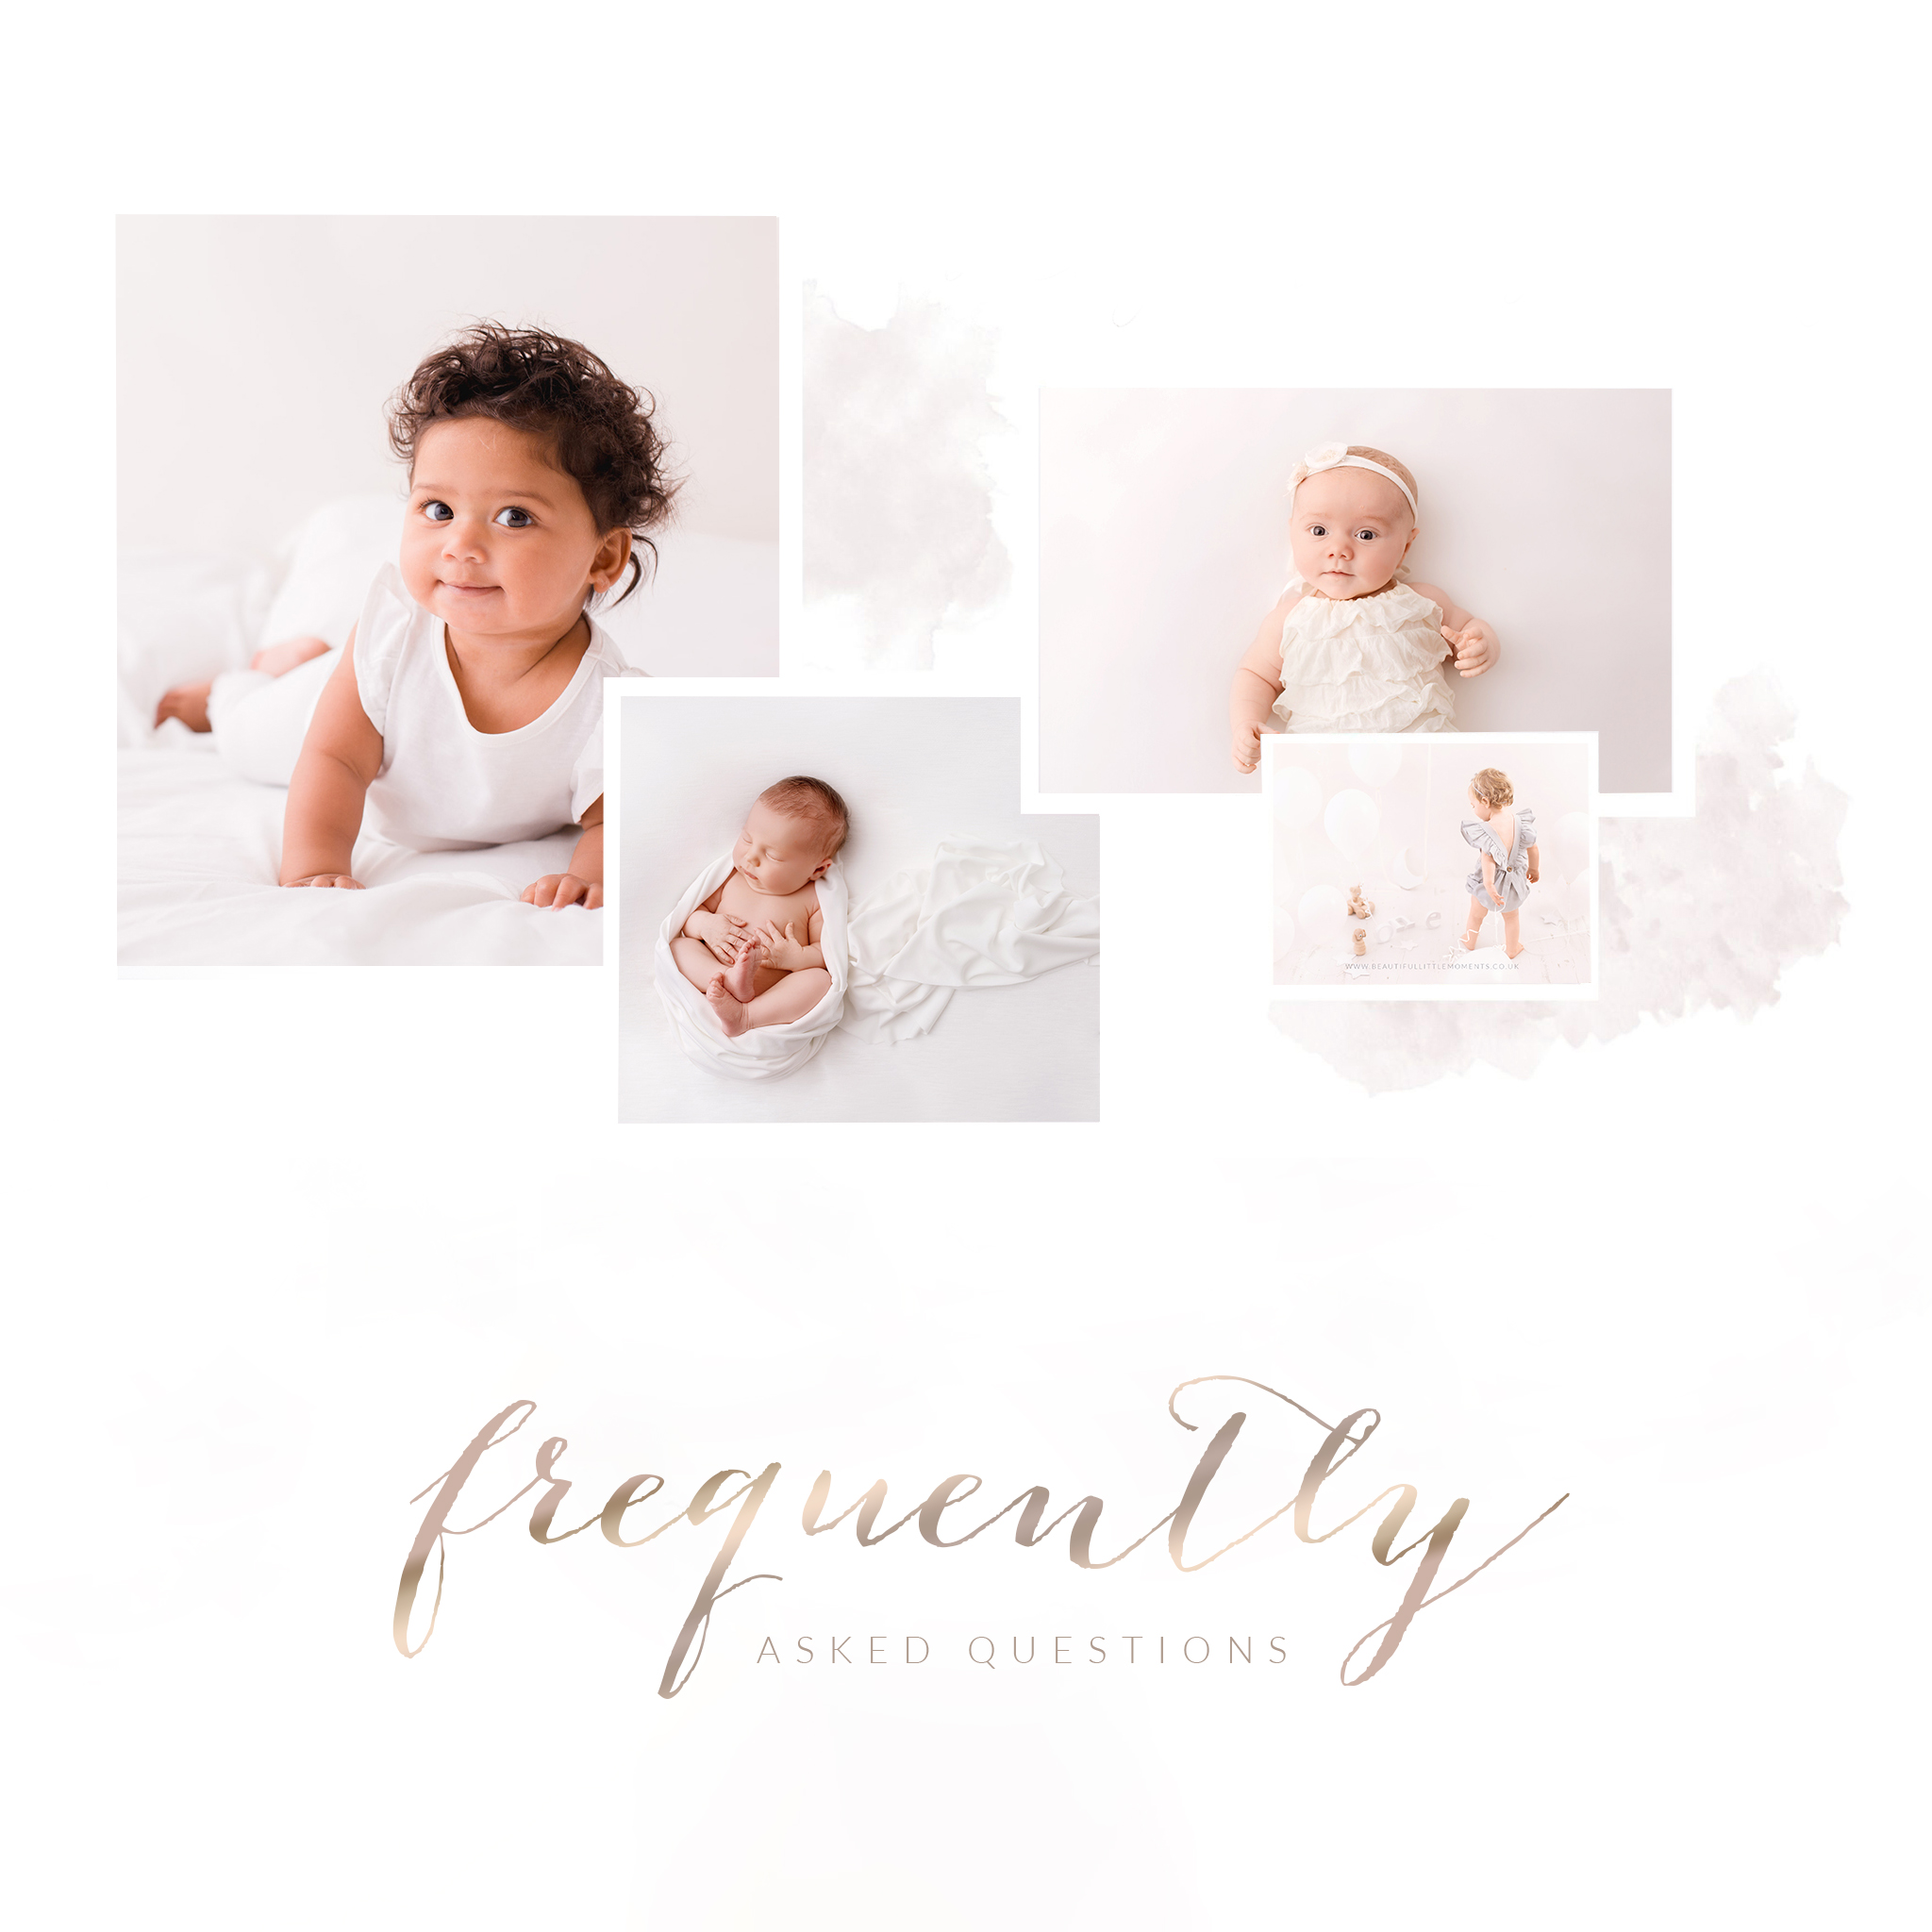 newborn photography frequently asked questions